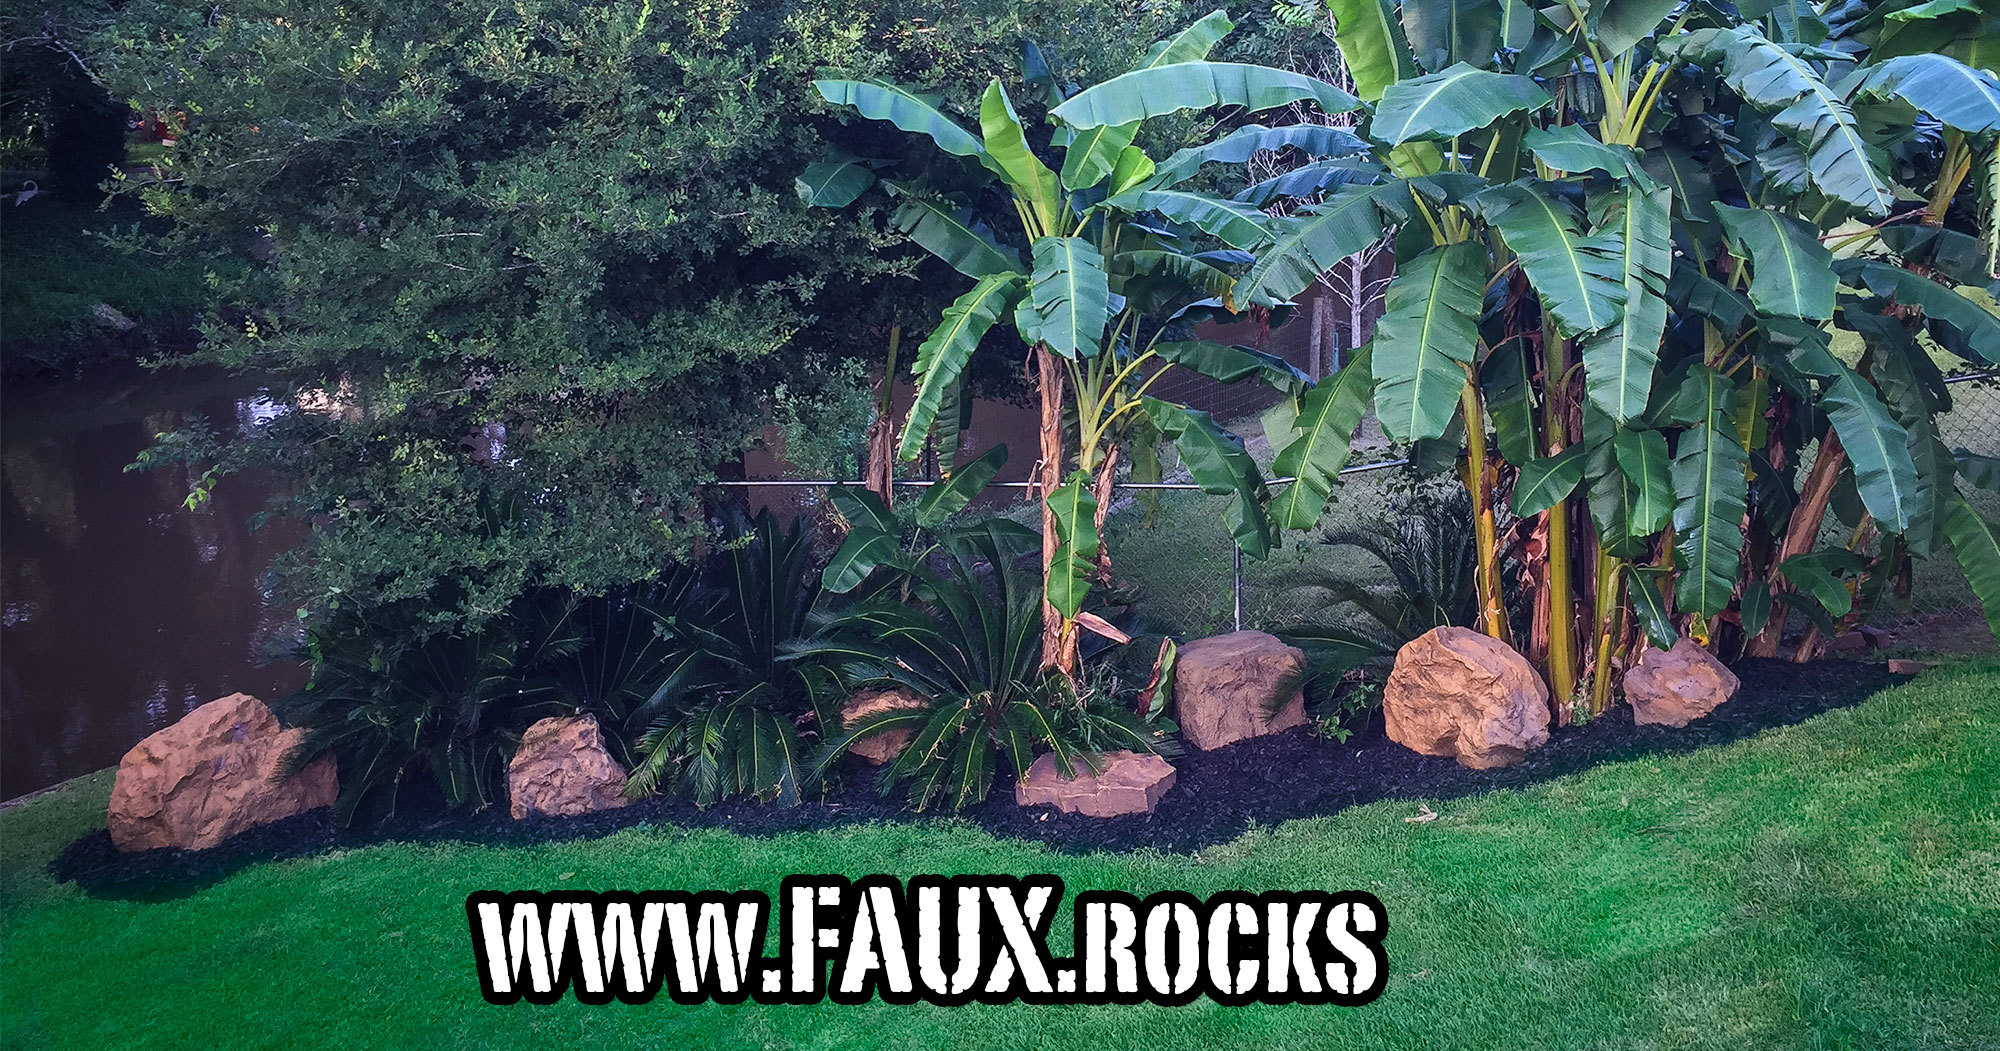 Do You Need Fake Landscaping Rocks In Your Houston Rock Garden? Houston Fake  Rocks Right Here.